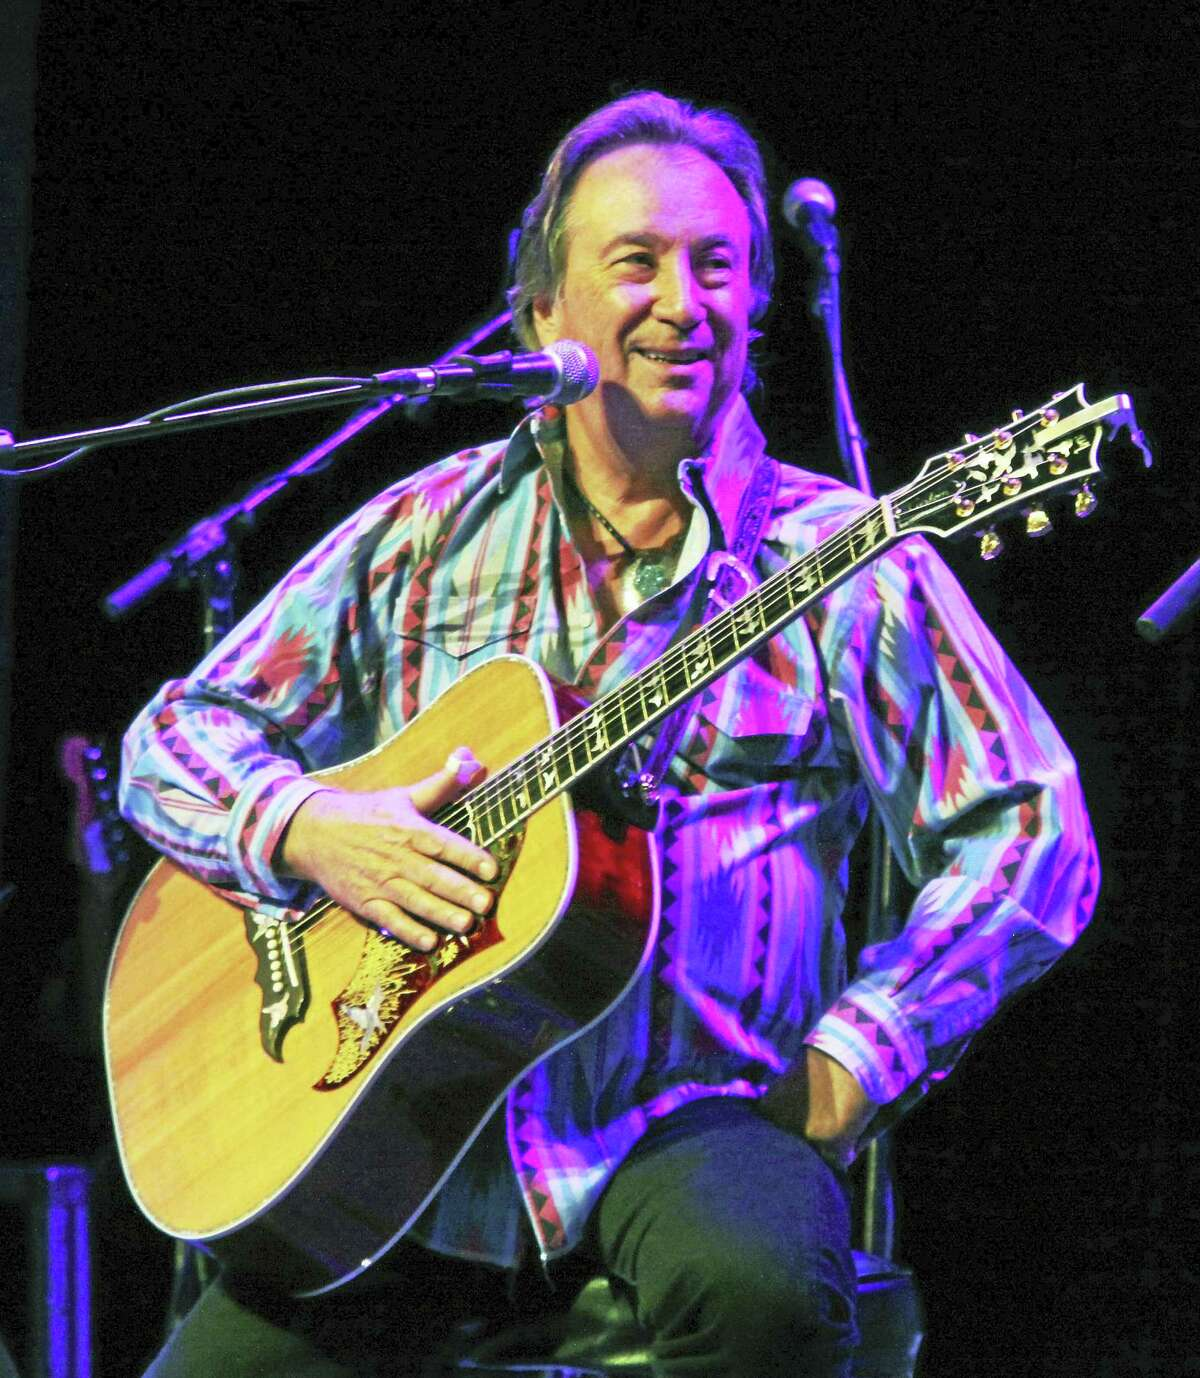 Contributed photoJim Messina, known for his work with Kenny Loggins in Loggins and Messina as well as Buffalo Springfield and Poco, will perform at Infinity Music Hall in Norfolk on July 15.